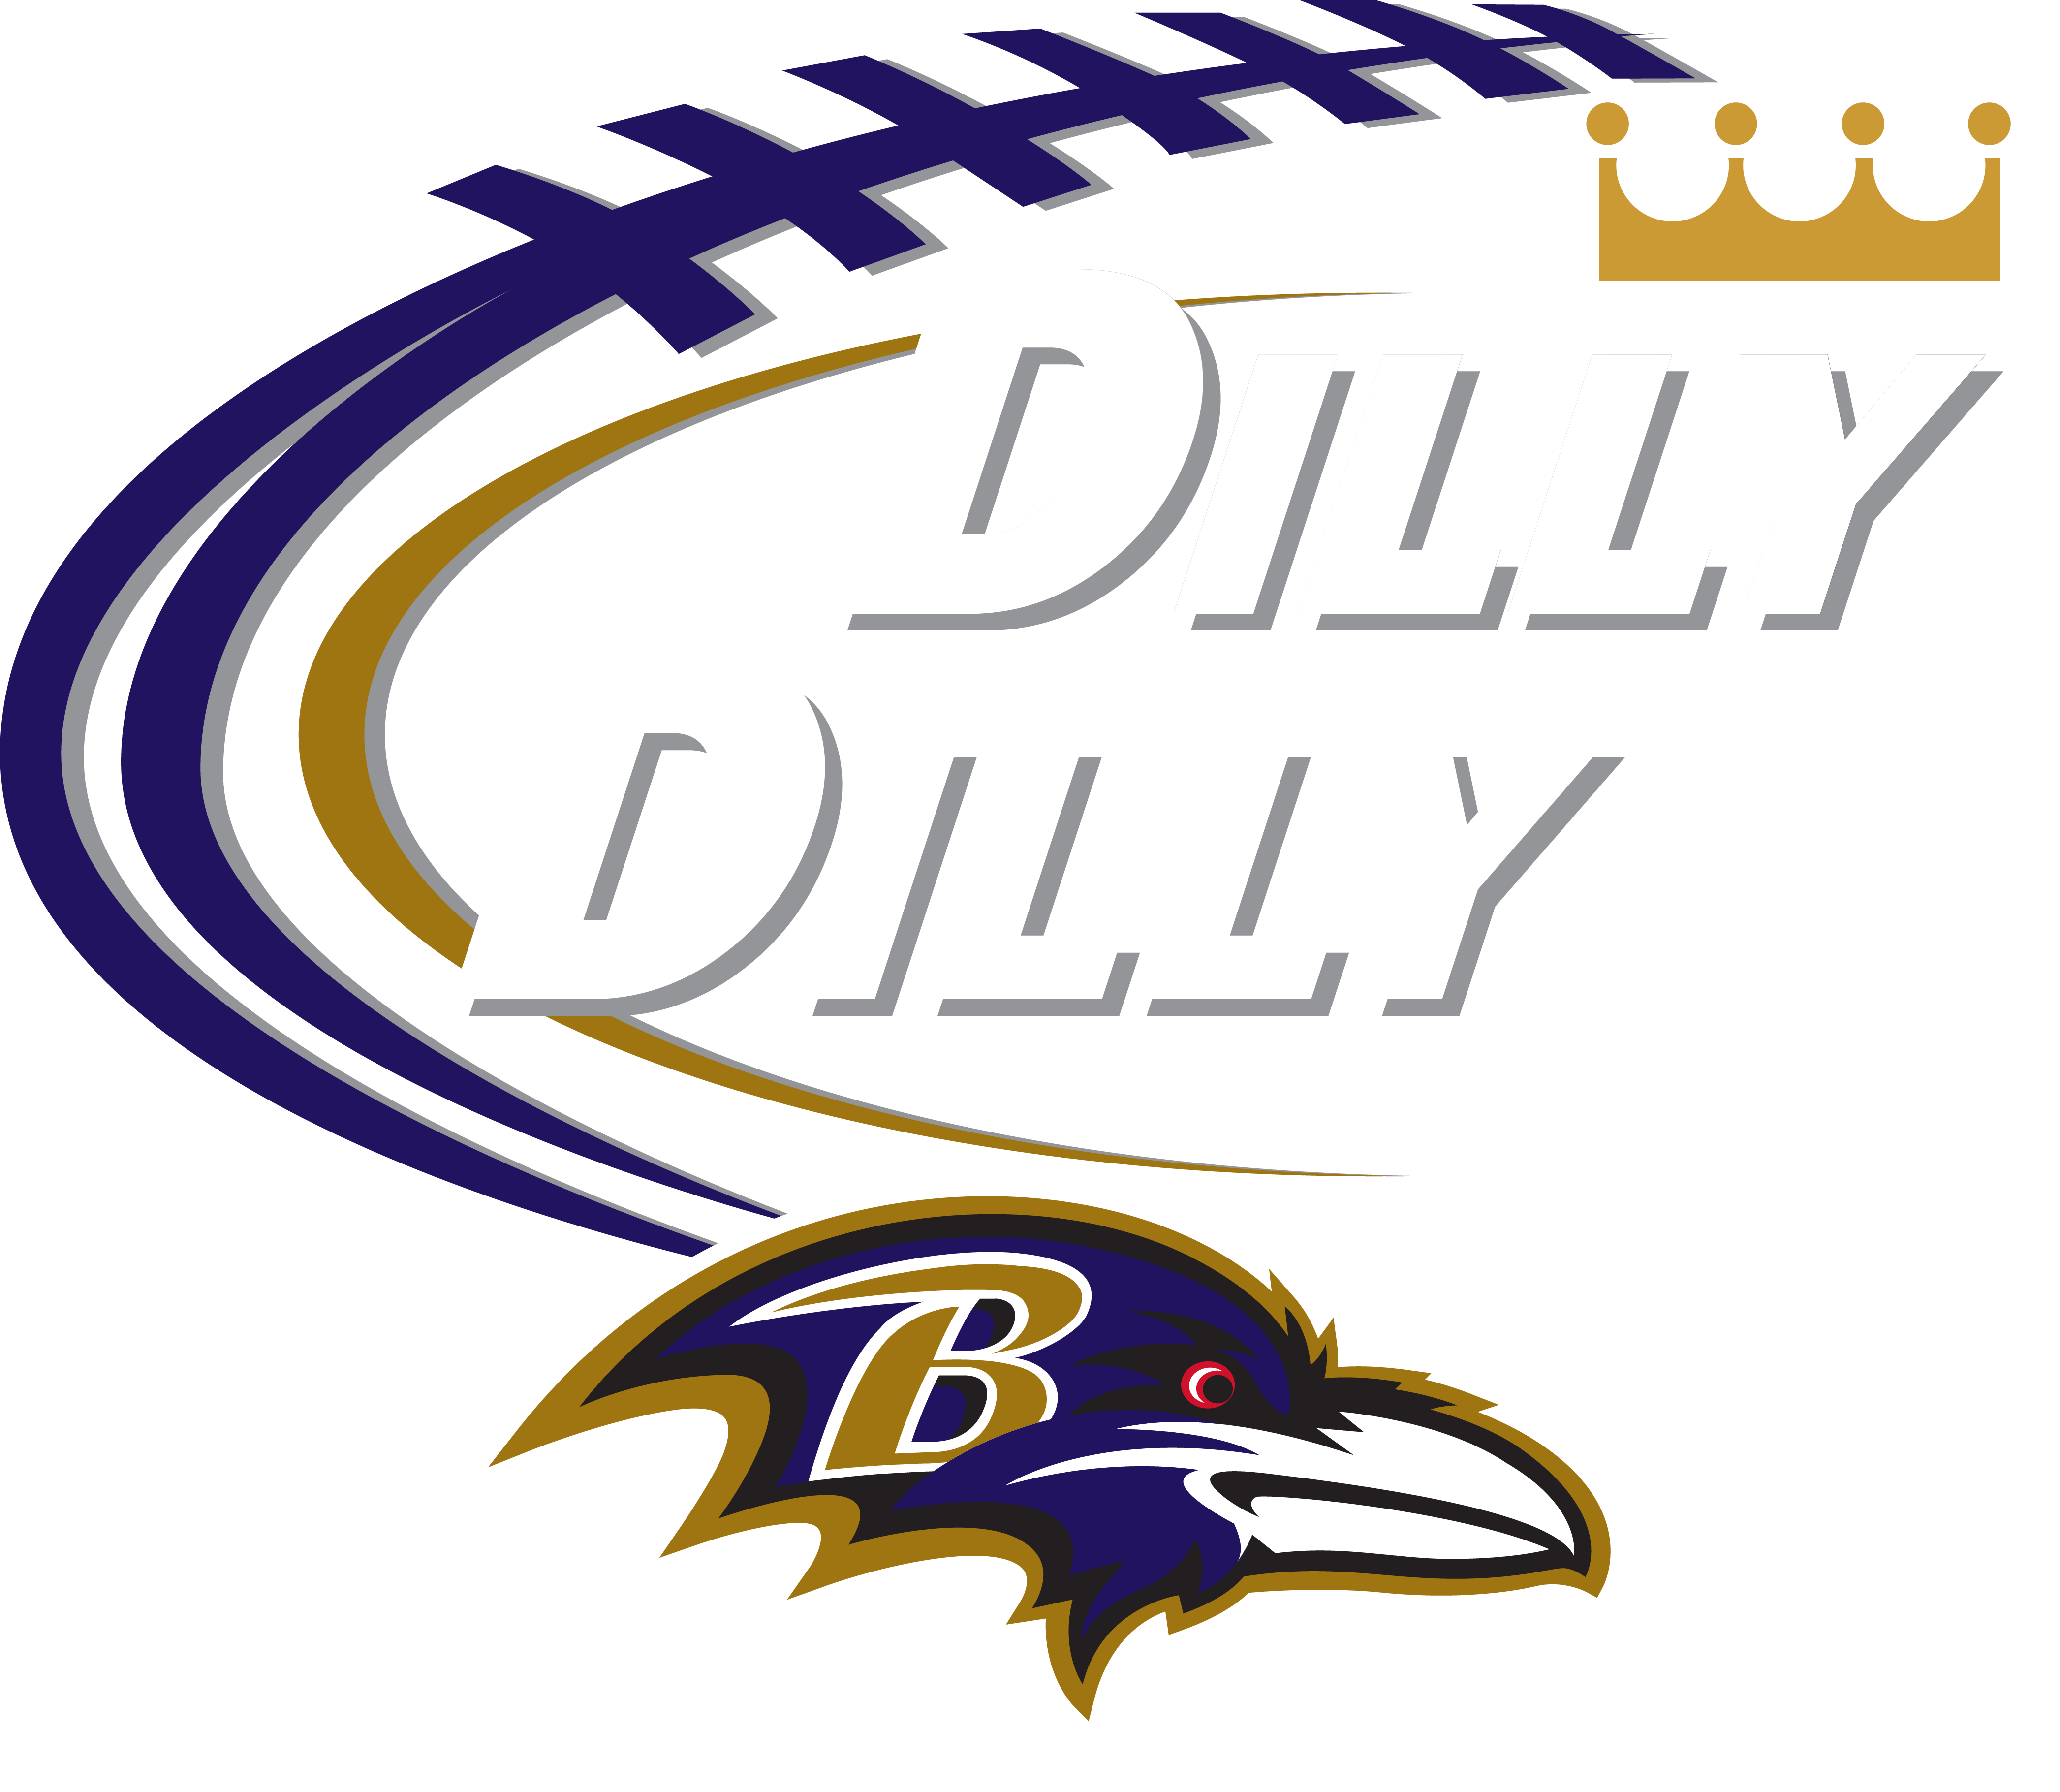 Football pants clipart graphic freeuse stock Dilly Dill Men's T-Shirt - Craze Fashion graphic freeuse stock